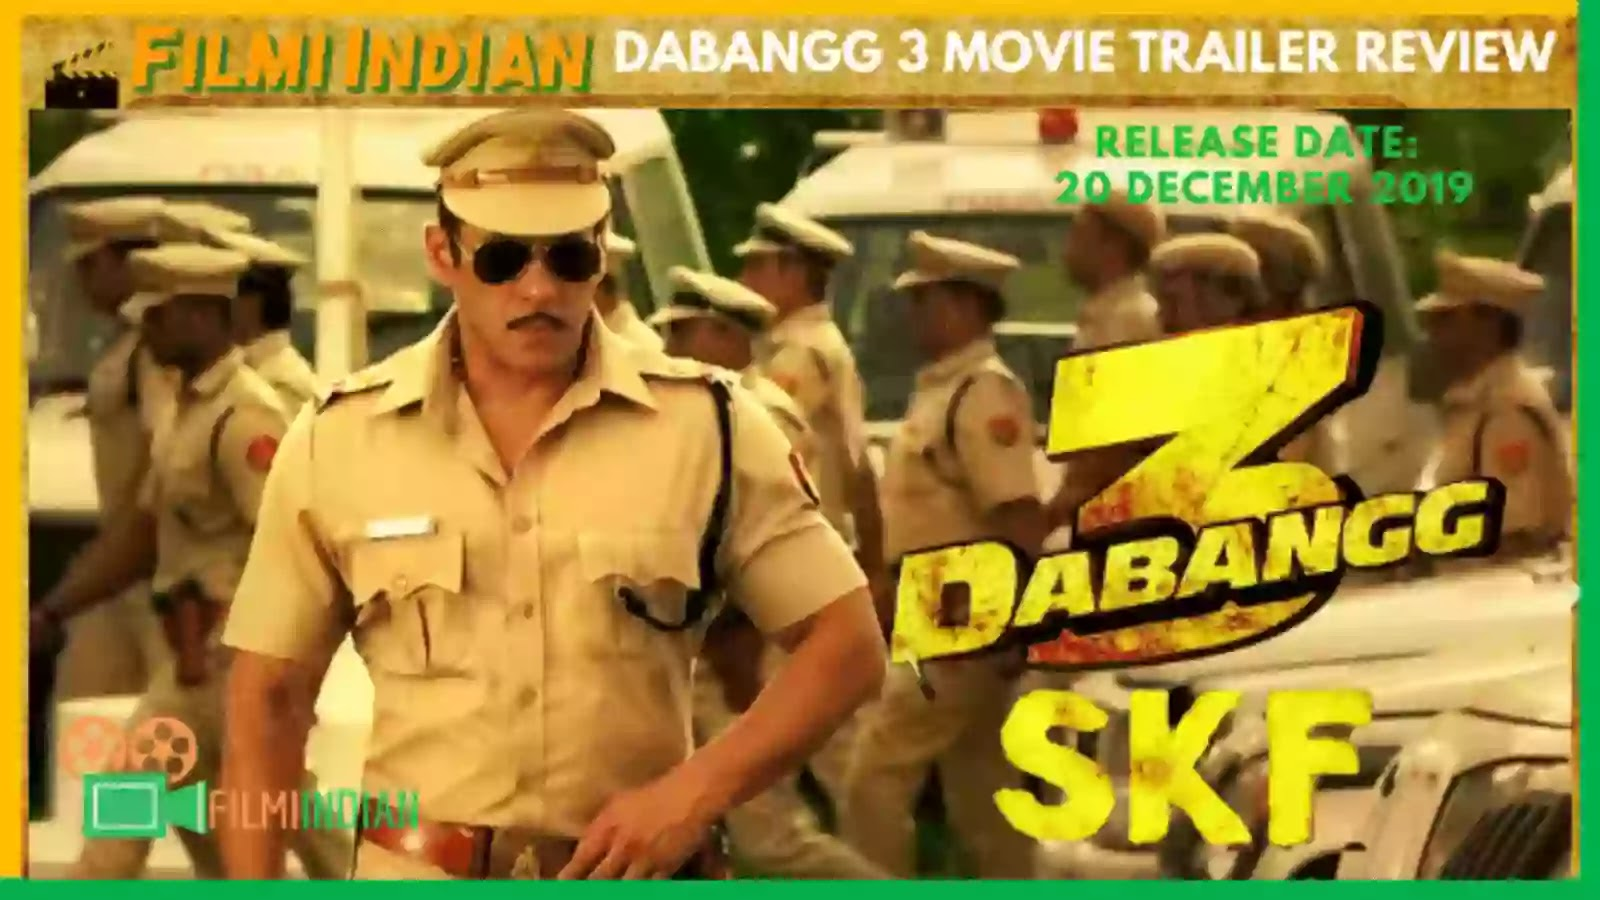 Dabangg : 3 (2019) Movie Trailer Review : Best and Honest Review